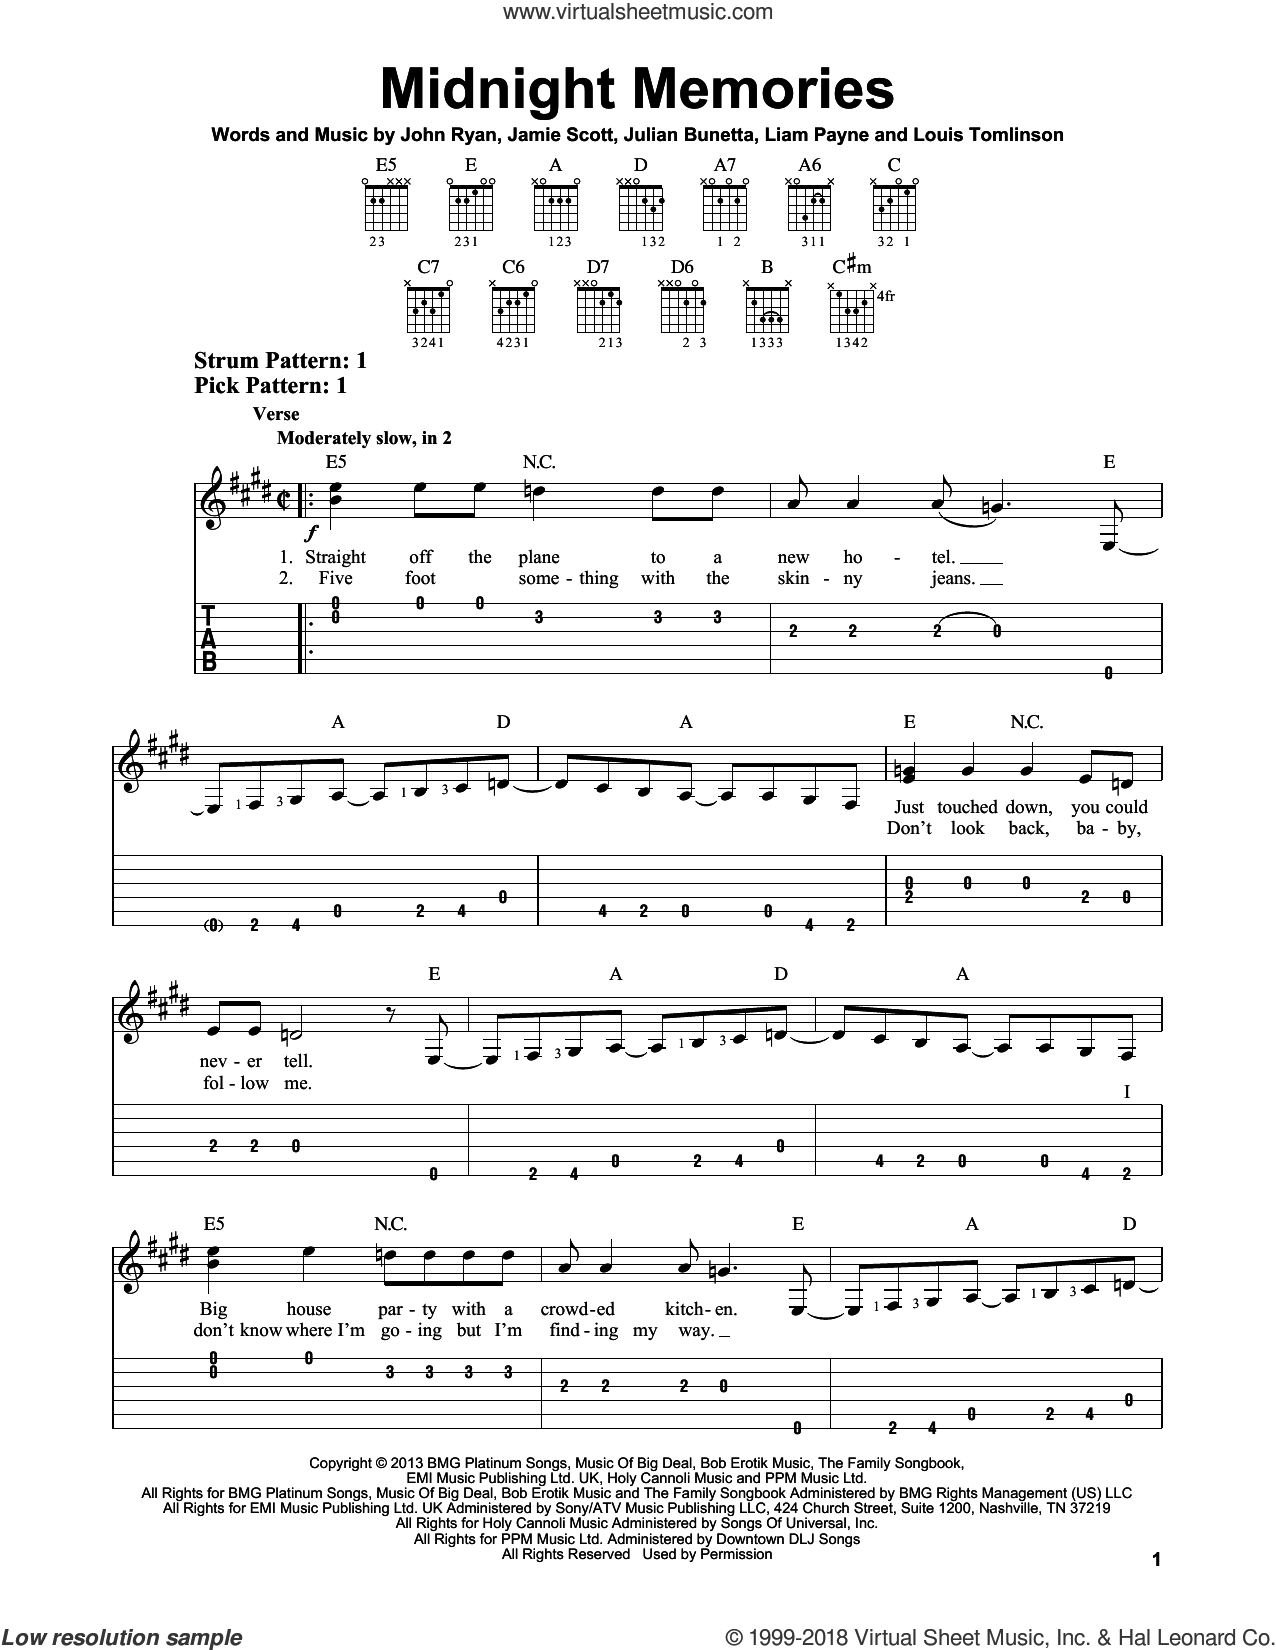 Midnight Memories sheet music for guitar solo (easy tablature) by One Direction, Jamie Scott, John Ryan, Julian Bunetta, Liam Payne and Louis Tomlinson, easy guitar (easy tablature). Score Image Preview.